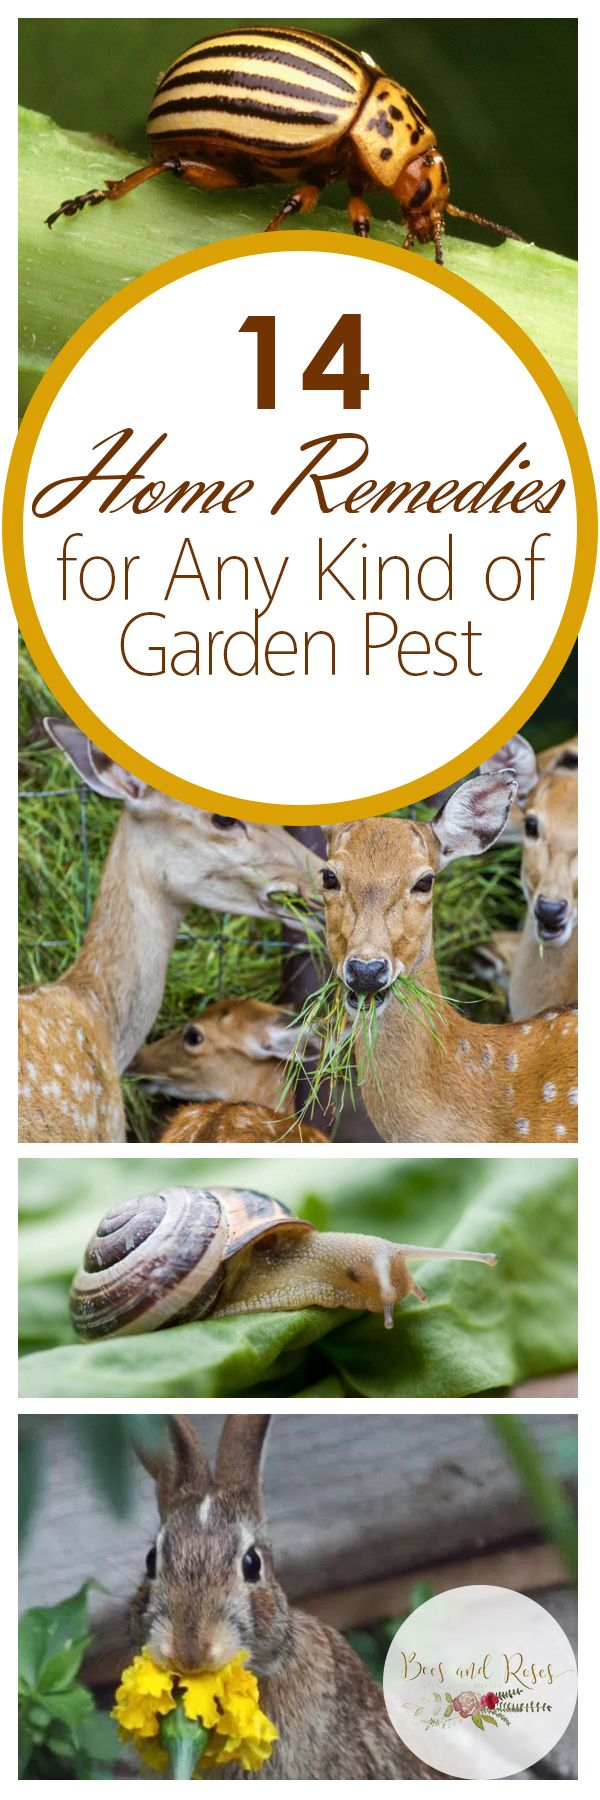 14 home remedies for any kind of garden pest